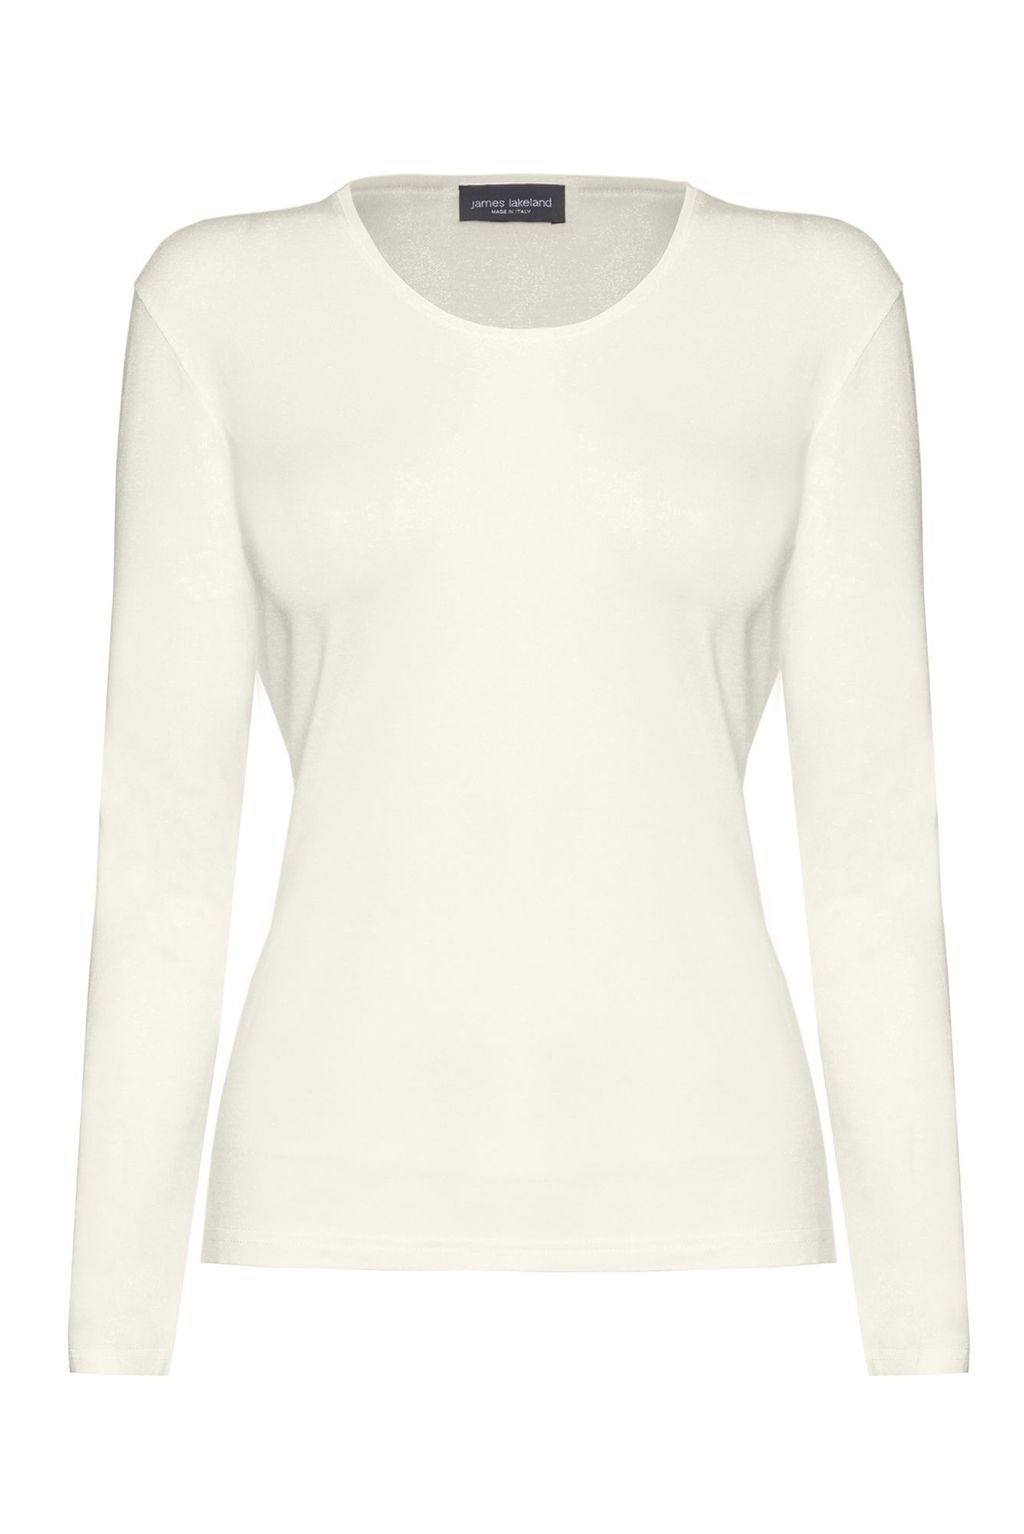 Basic Long Sleeve T Shirt, Cream - neckline: round neck; pattern: plain; style: t-shirt; predominant colour: ivory/cream; occasions: casual, work, creative work; length: standard; fibres: viscose/rayon - stretch; fit: body skimming; sleeve length: long sleeve; sleeve style: standard; texture group: jersey - clingy; pattern type: fabric; season: a/w 2015